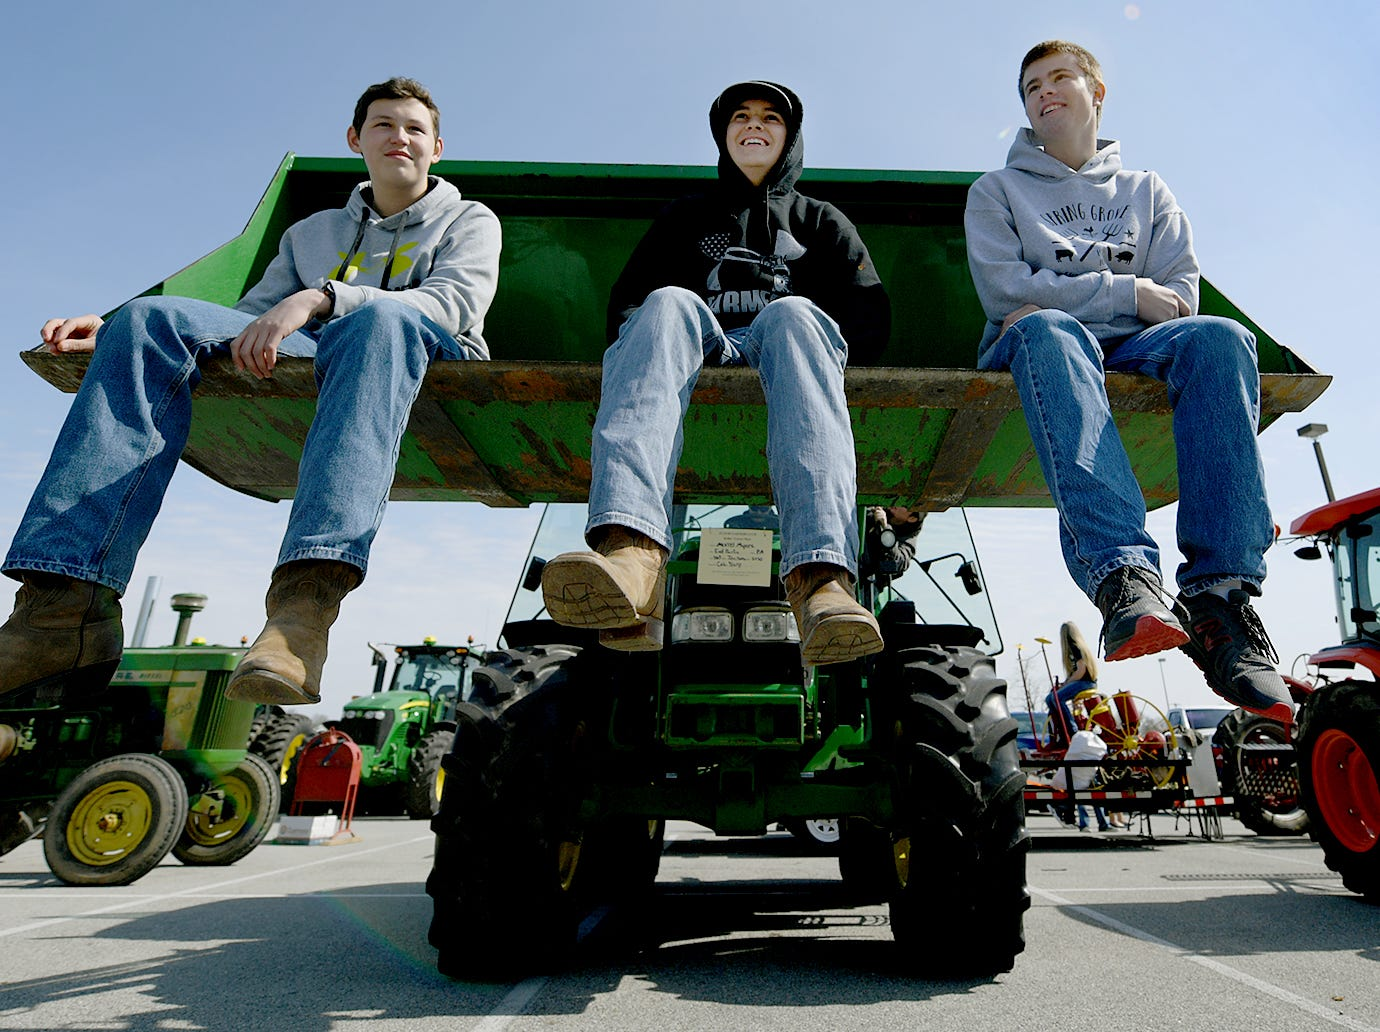 Future Farmers Club members, from left, freshman Wyatt Baker, sophomore Chase Young and freshman Brandon Mummert sits in a tractor bucket while helping out during the district's 6th Annual Rollin' Tractor Show Thursday, April 11, 2019. The show is presented by the Future Farmers Club. Alumni and area residents brought farm equipment to display with the goal of acquainting students with the agriculture industry. The show, which included a parade of equipment, visited the intermediate and elementary schools. Bill Kalina photo